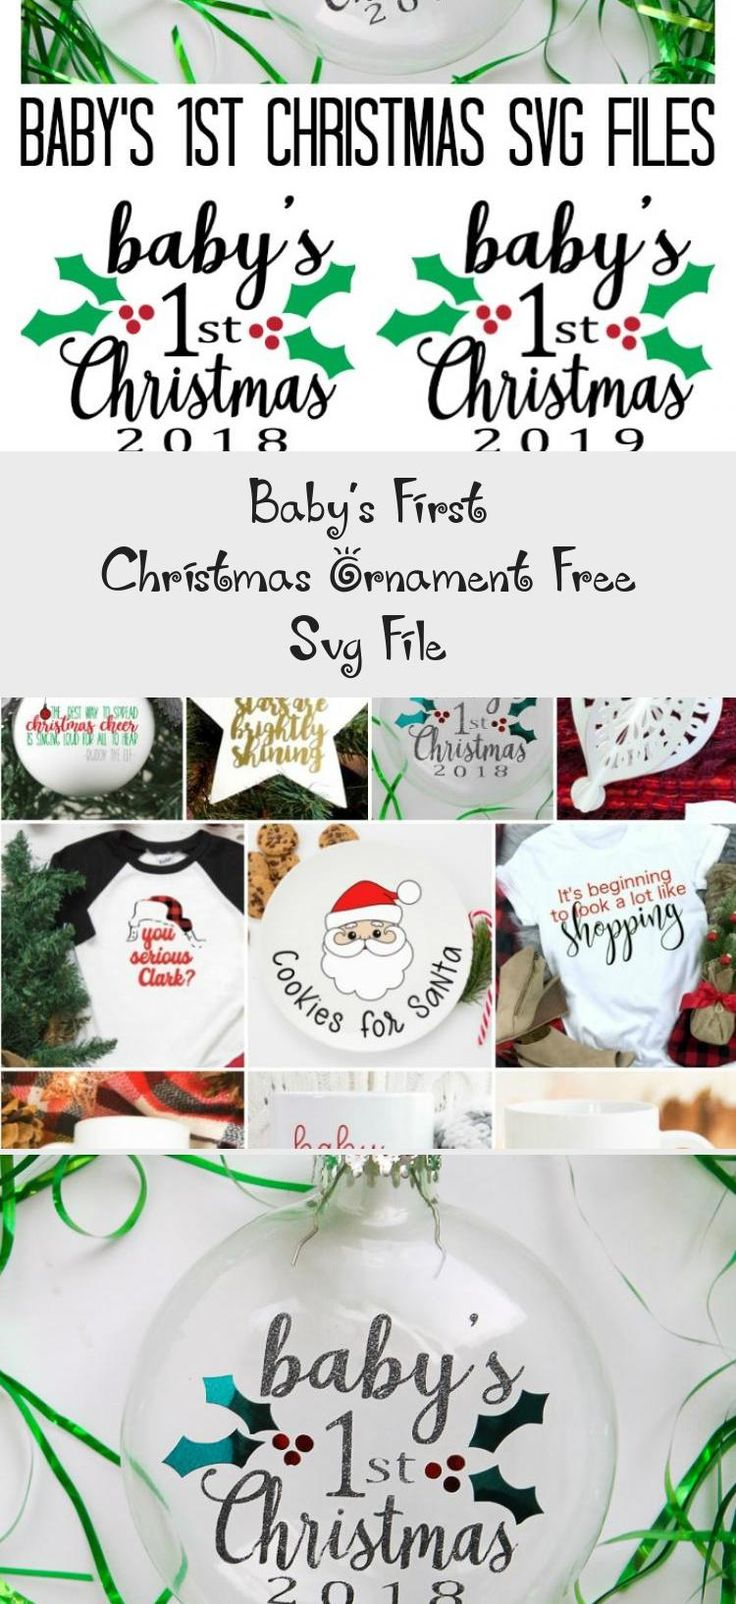 Baby's First Christmas Ornament Free Svg File, 2020